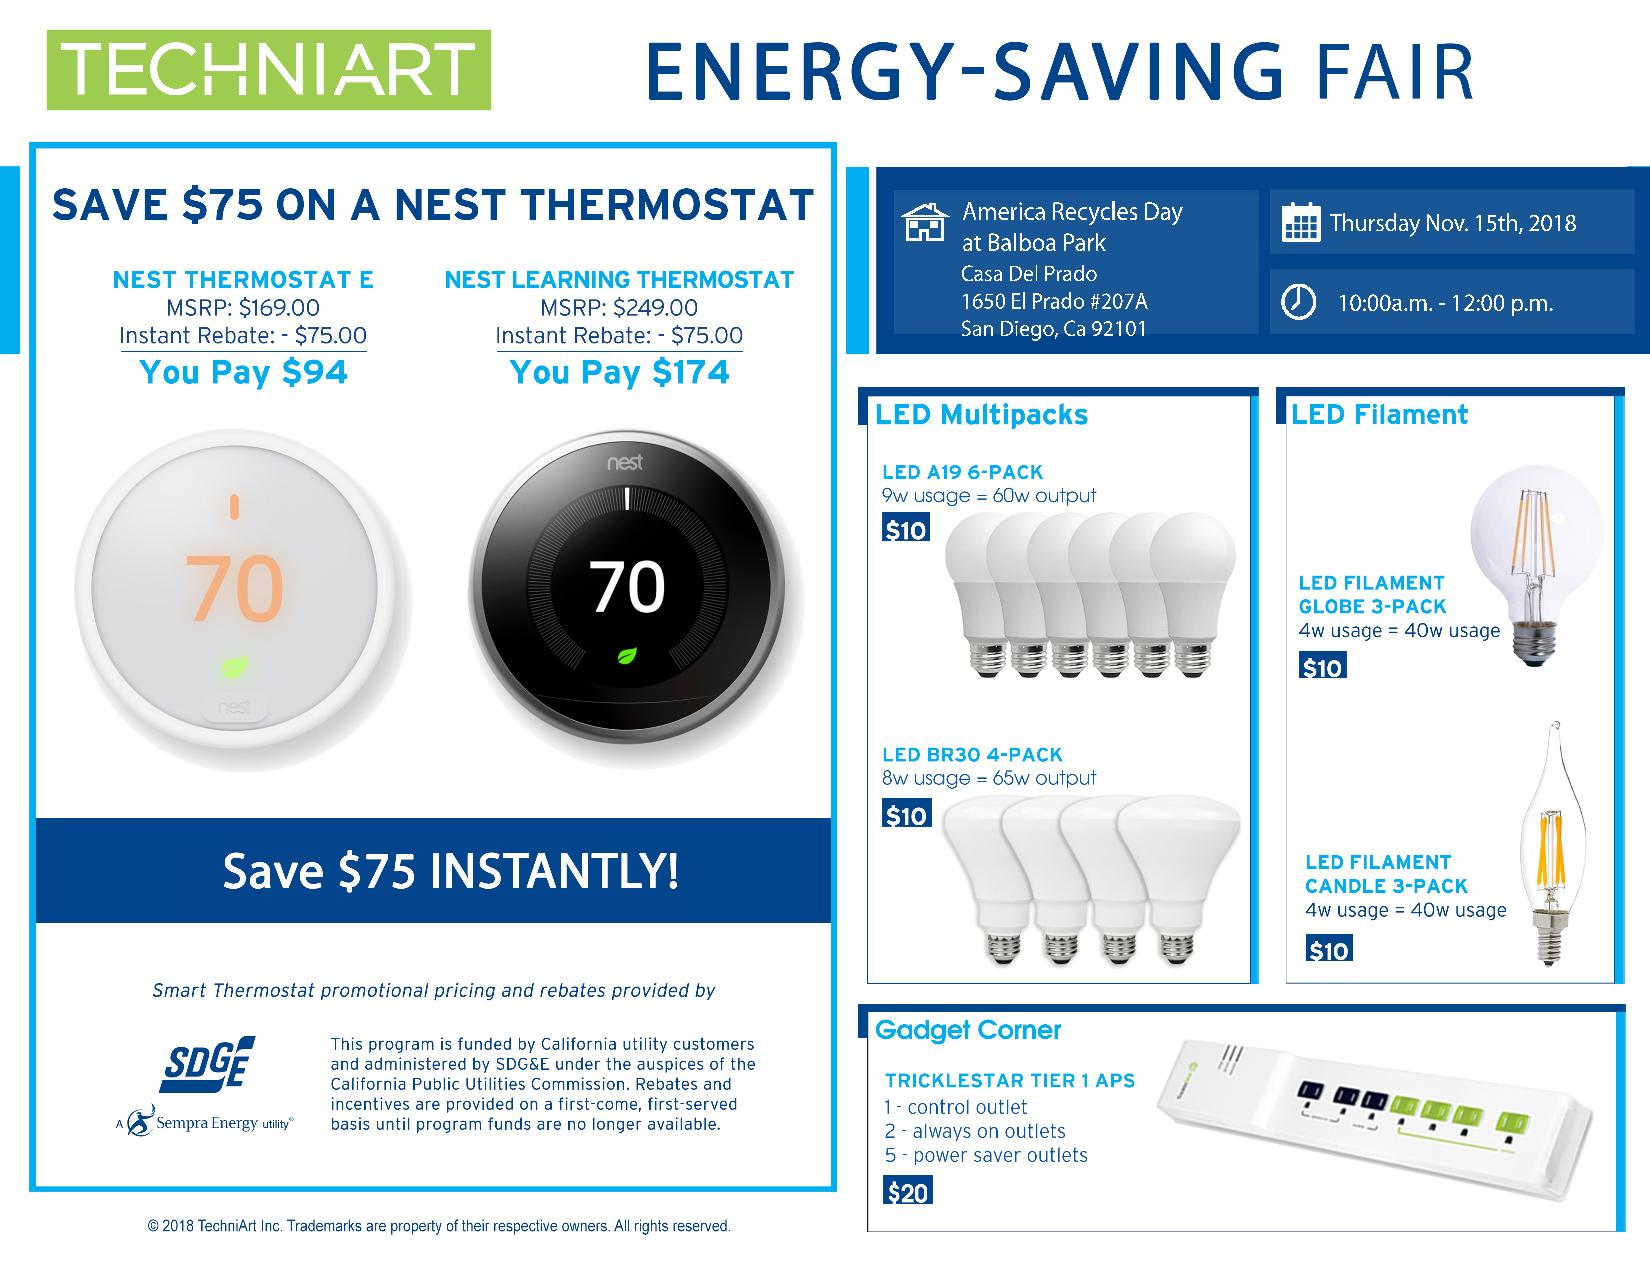 Energy-Saving Fair